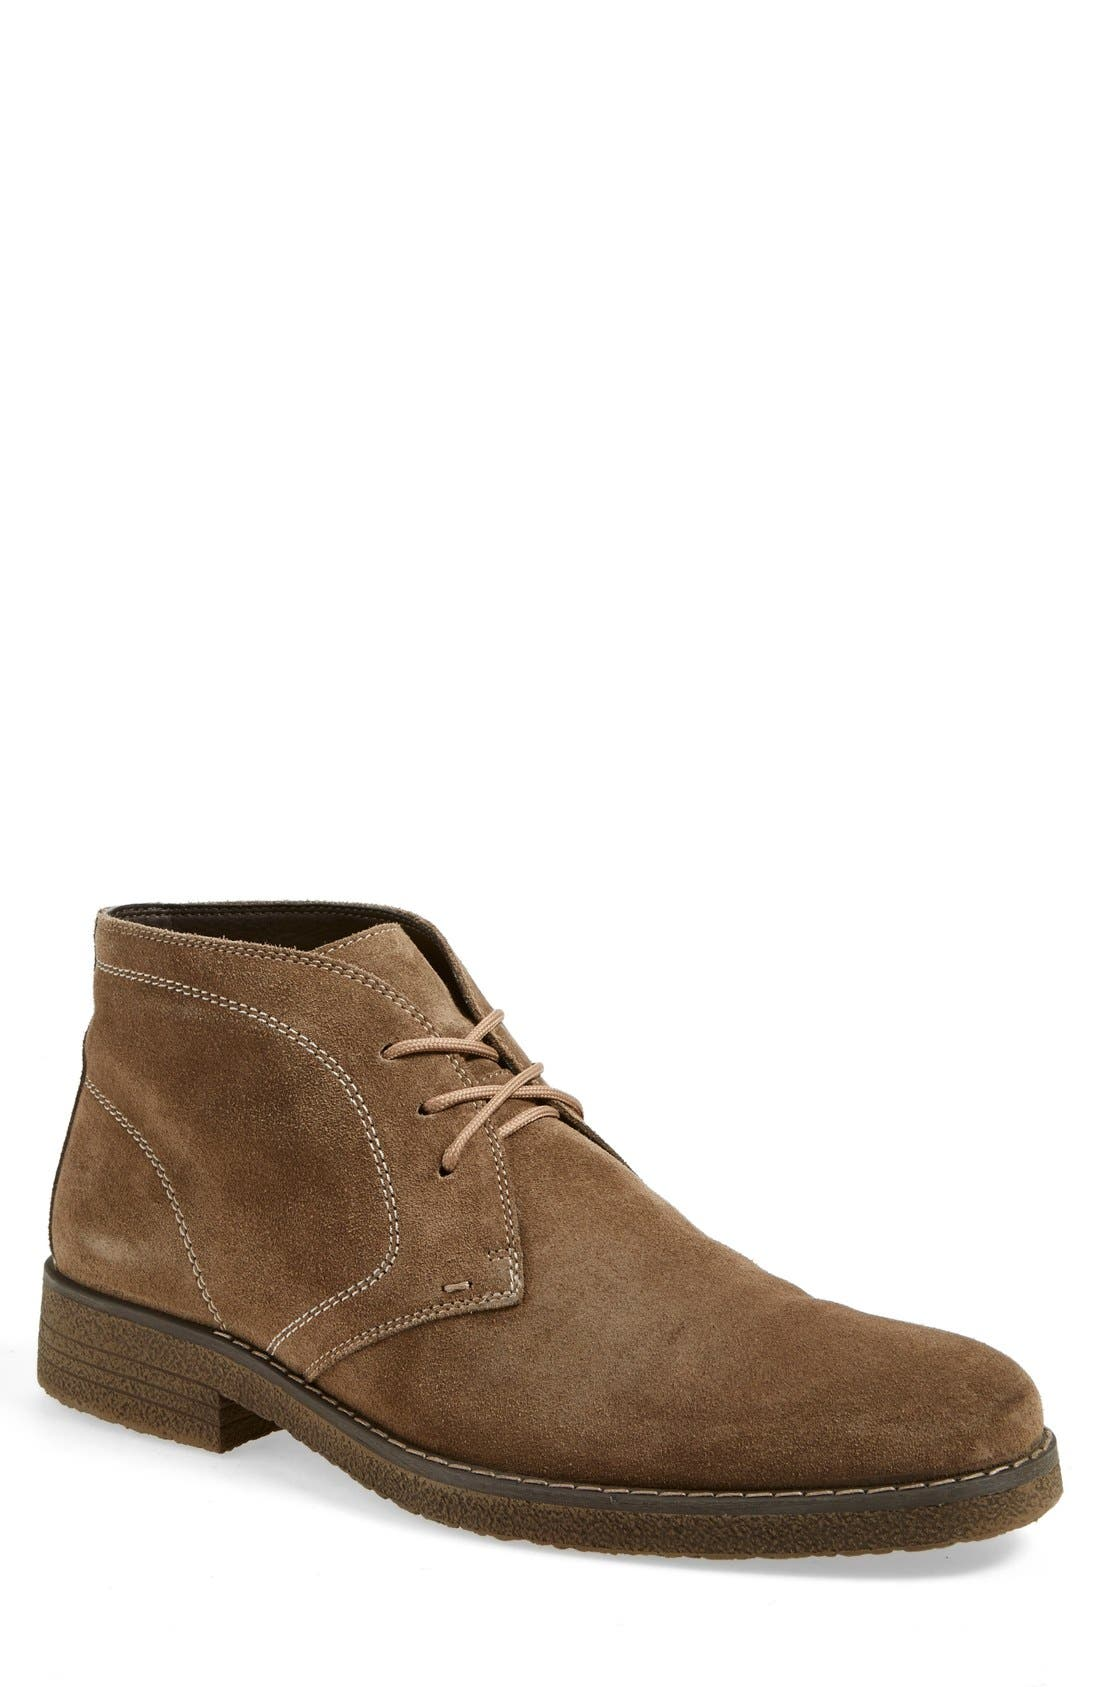 'Tyler' Chukka Boot,                             Main thumbnail 1, color,                             Taupe Suede